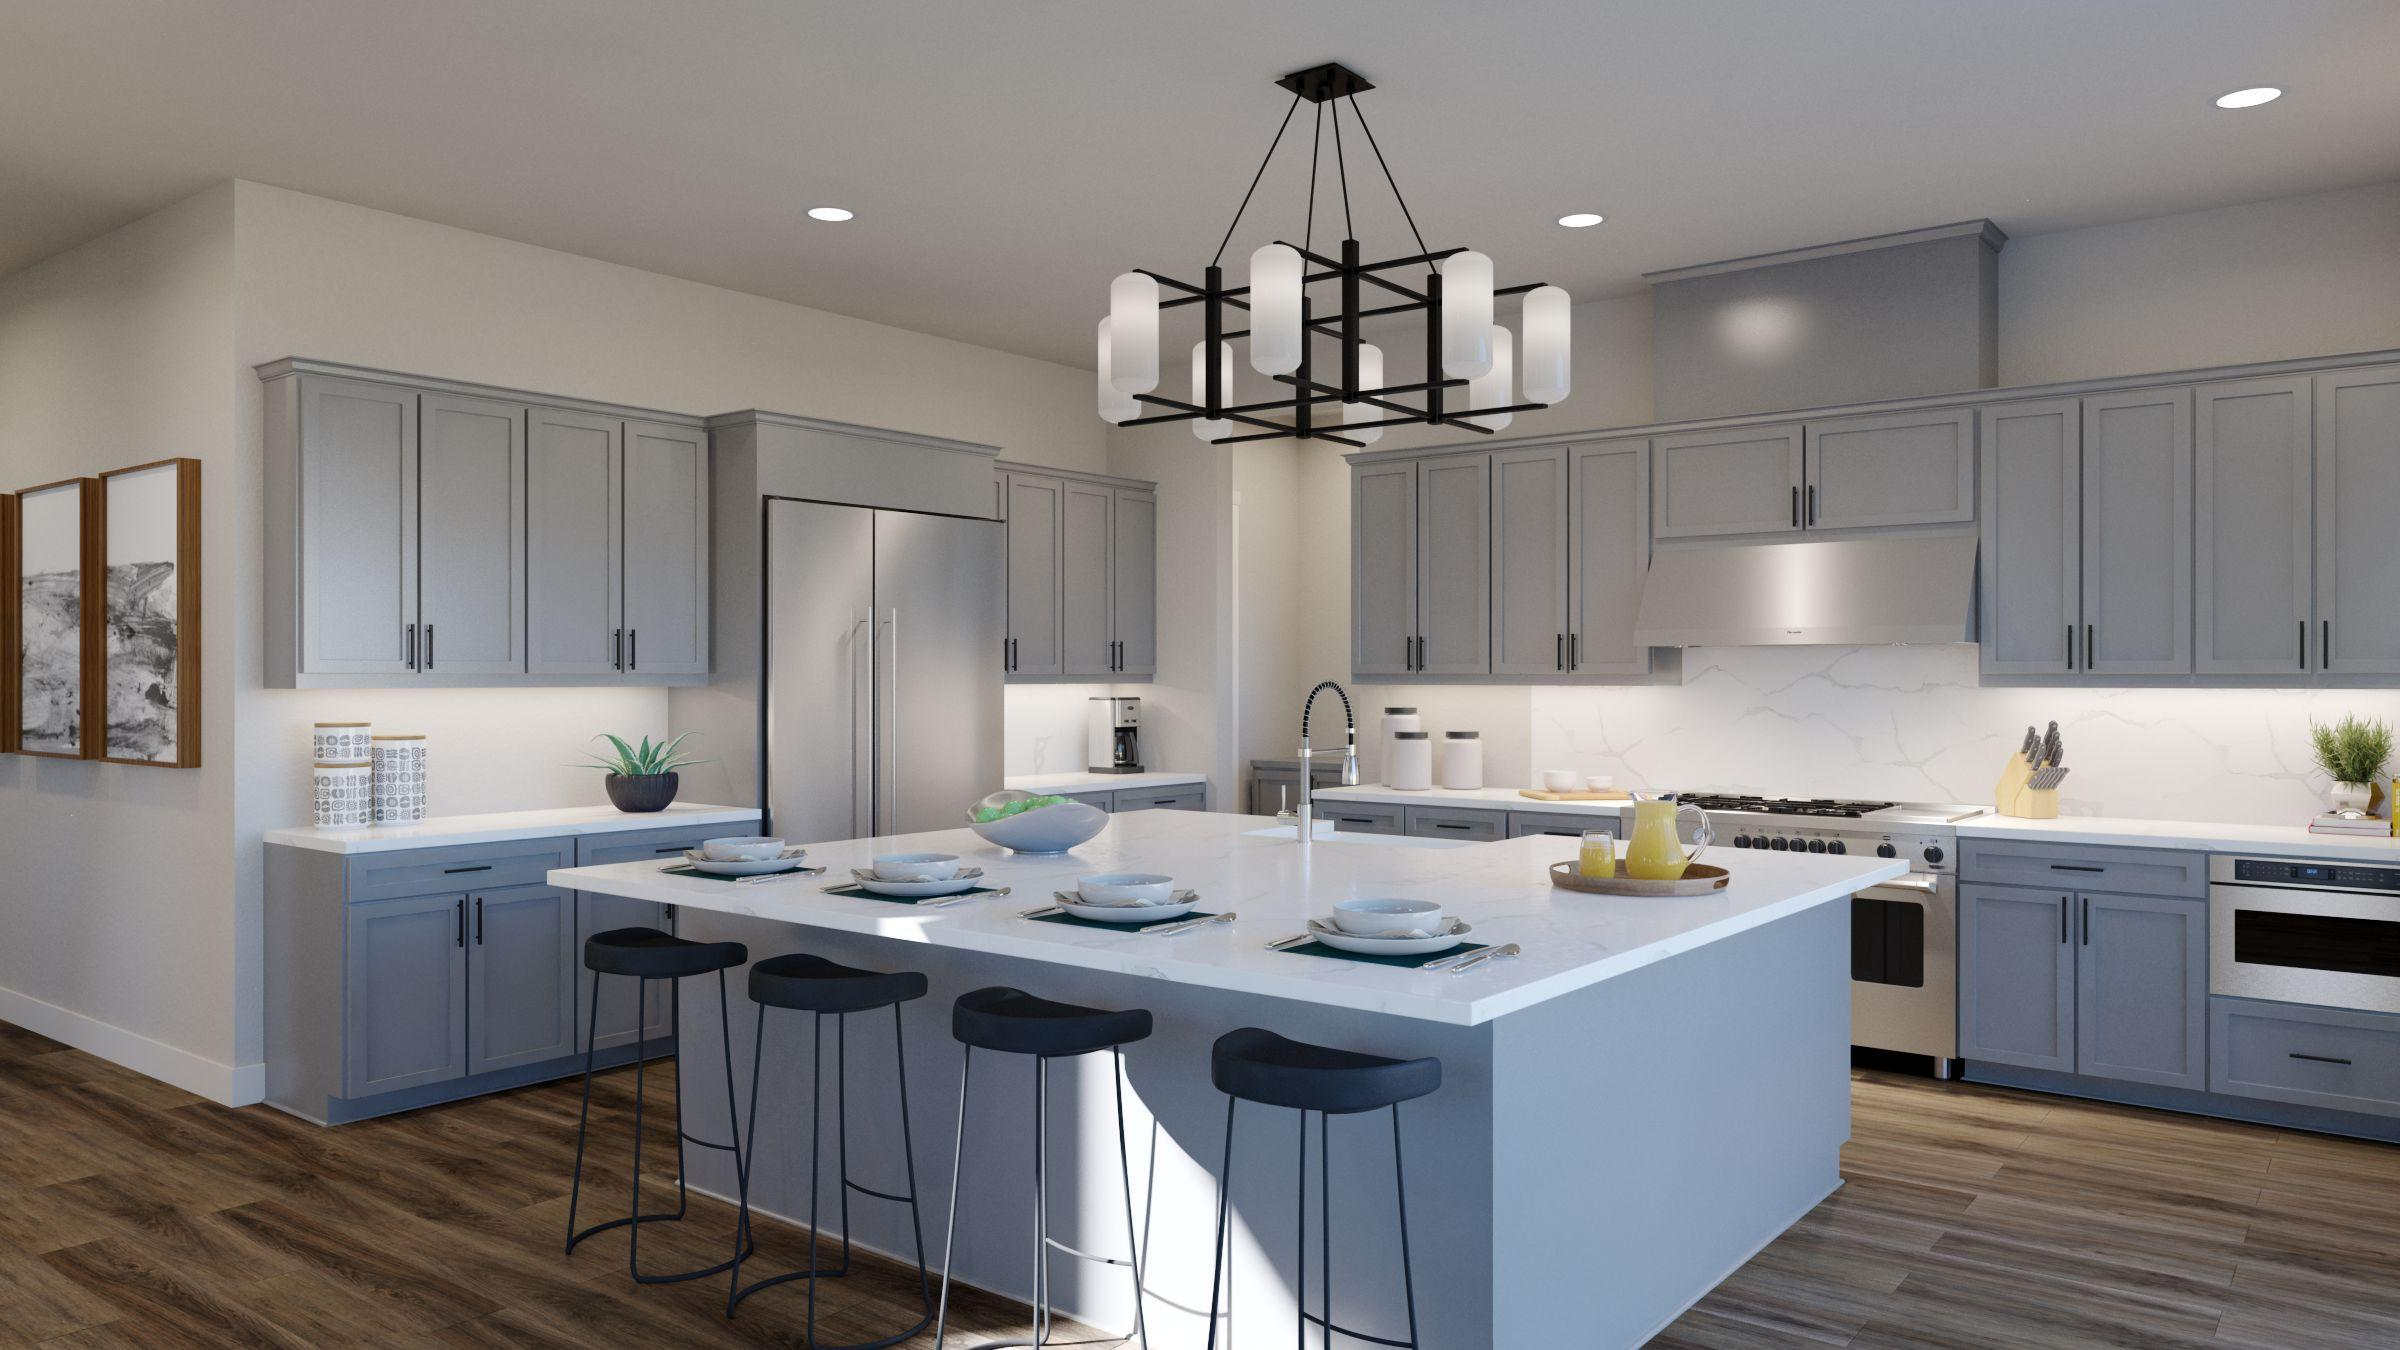 Kitchen featured in the Residence 4 -Harmony By Trumark Homes in San Jose, CA